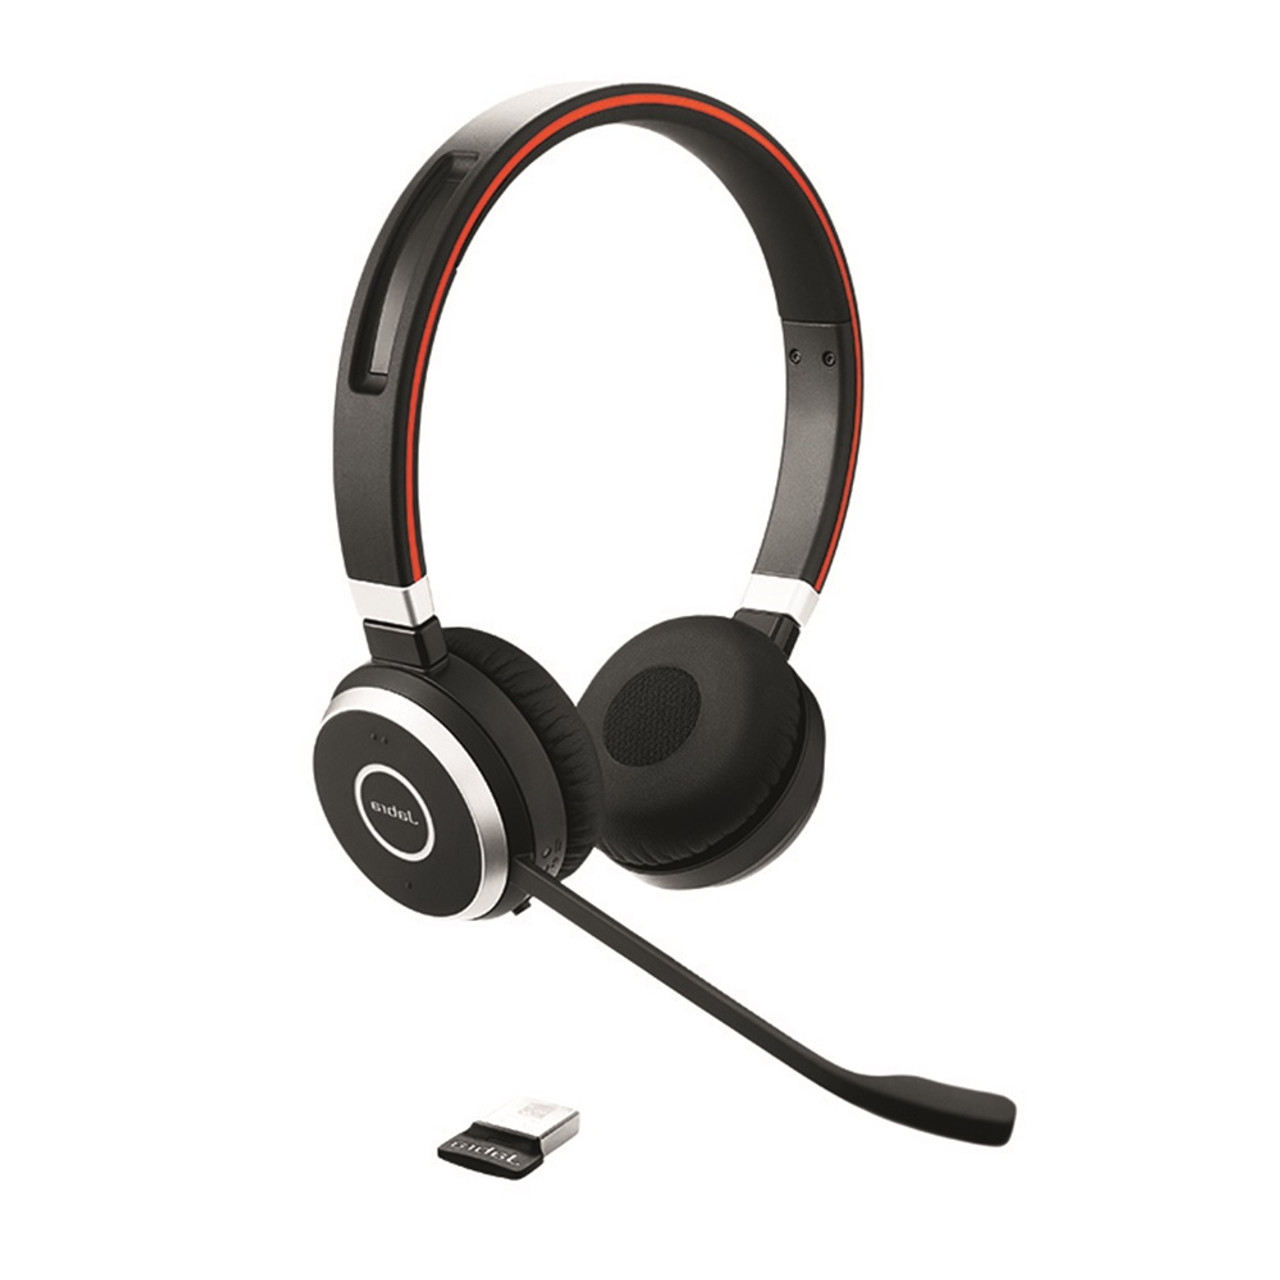 Jabra Evolve 65 Ms Stereo Bluetooth Headset Usb Bundle Streaming Music Skype 6599 823